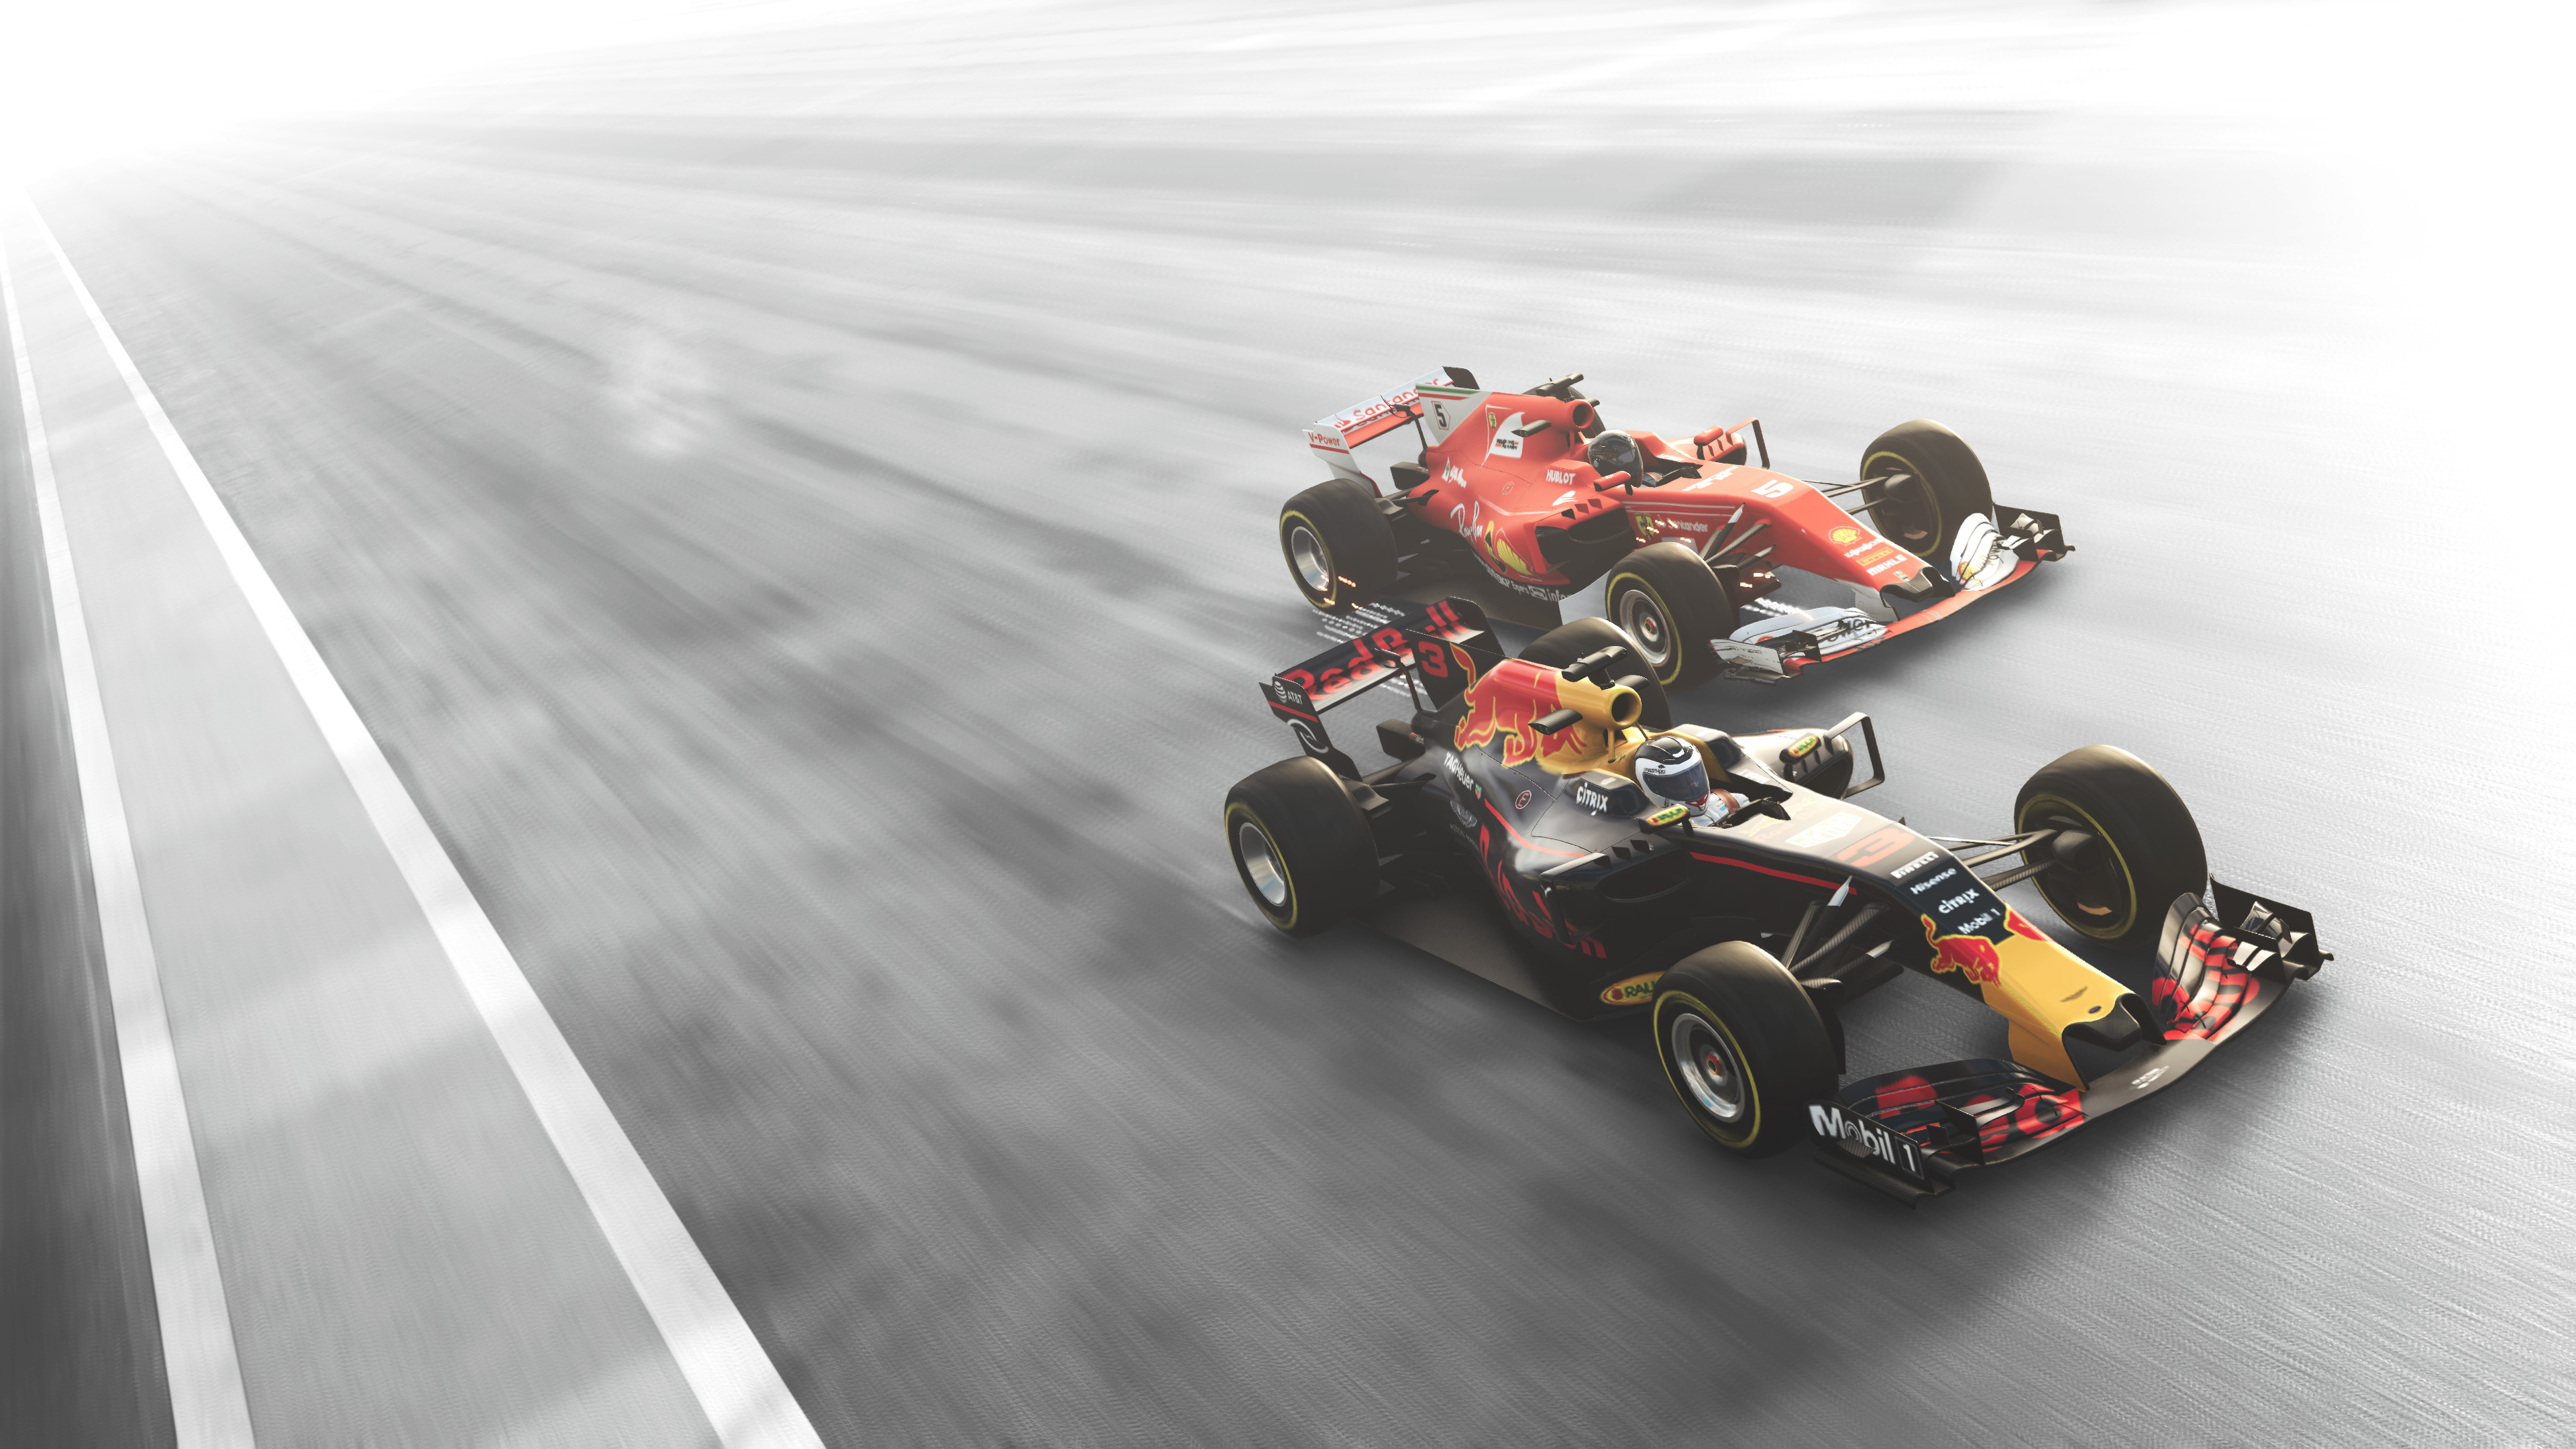 the crew 2 red bull f1 cars 4k 1539112437 - The Crew 2 Red Bull F1 Cars 4k - xbox games wallpapers, the crew wallpapers, the crew 2 wallpapers, red bull wallpapers, ps games wallpapers, pc games wallpapers, hd-wallpapers, games wallpapers, cars wallpapers, 4k-wallpapers